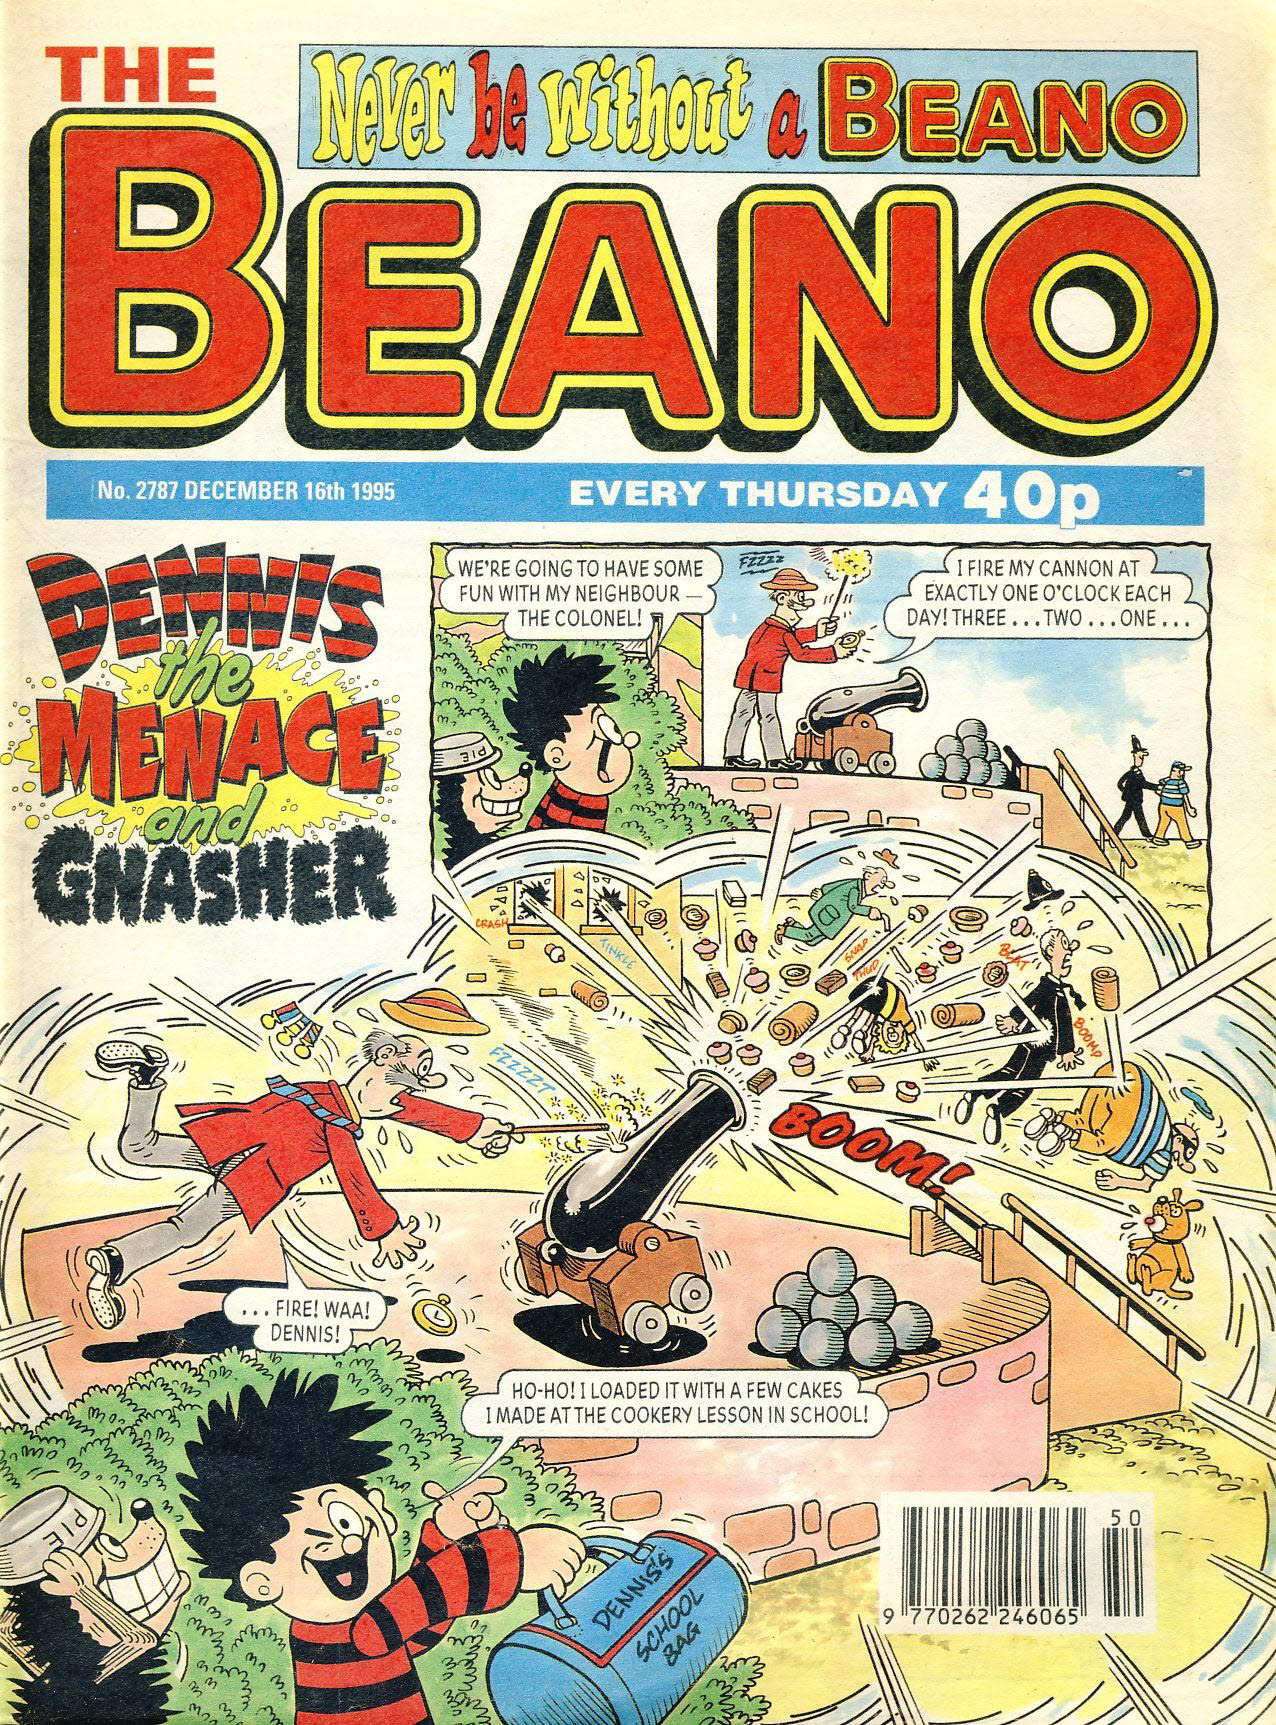 1995 December 16th BEANO vintage comic Good Gift Christmas Present Birthday Anniversary ref5 A vintage comic in good read condition. Please see larger photo and full description for details.